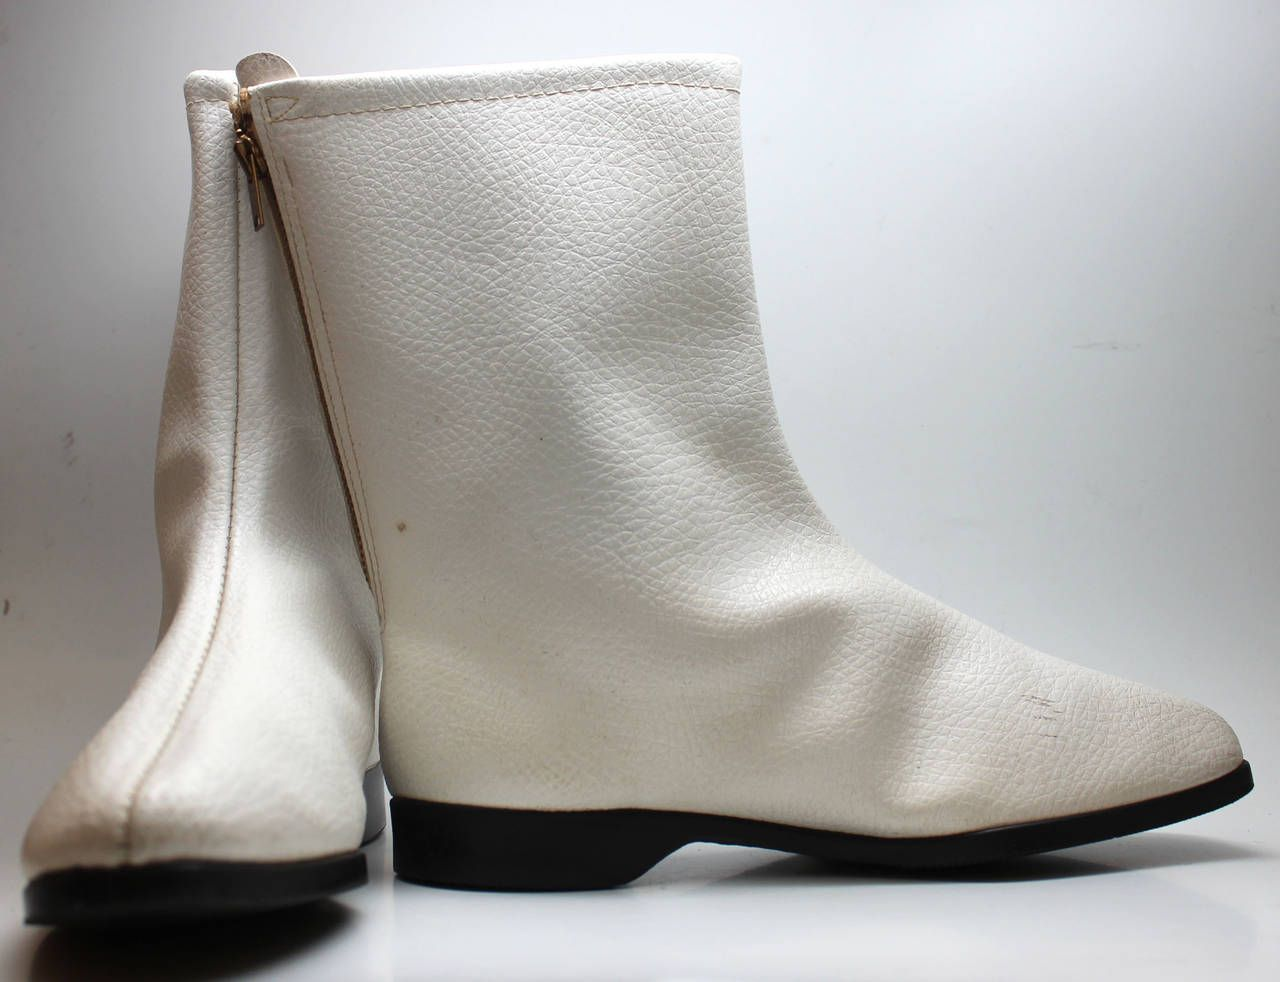 214298b44 Rare 1960s Hullabaloo Go Go Boots   shoes......shoes   Boots, Shoes ...